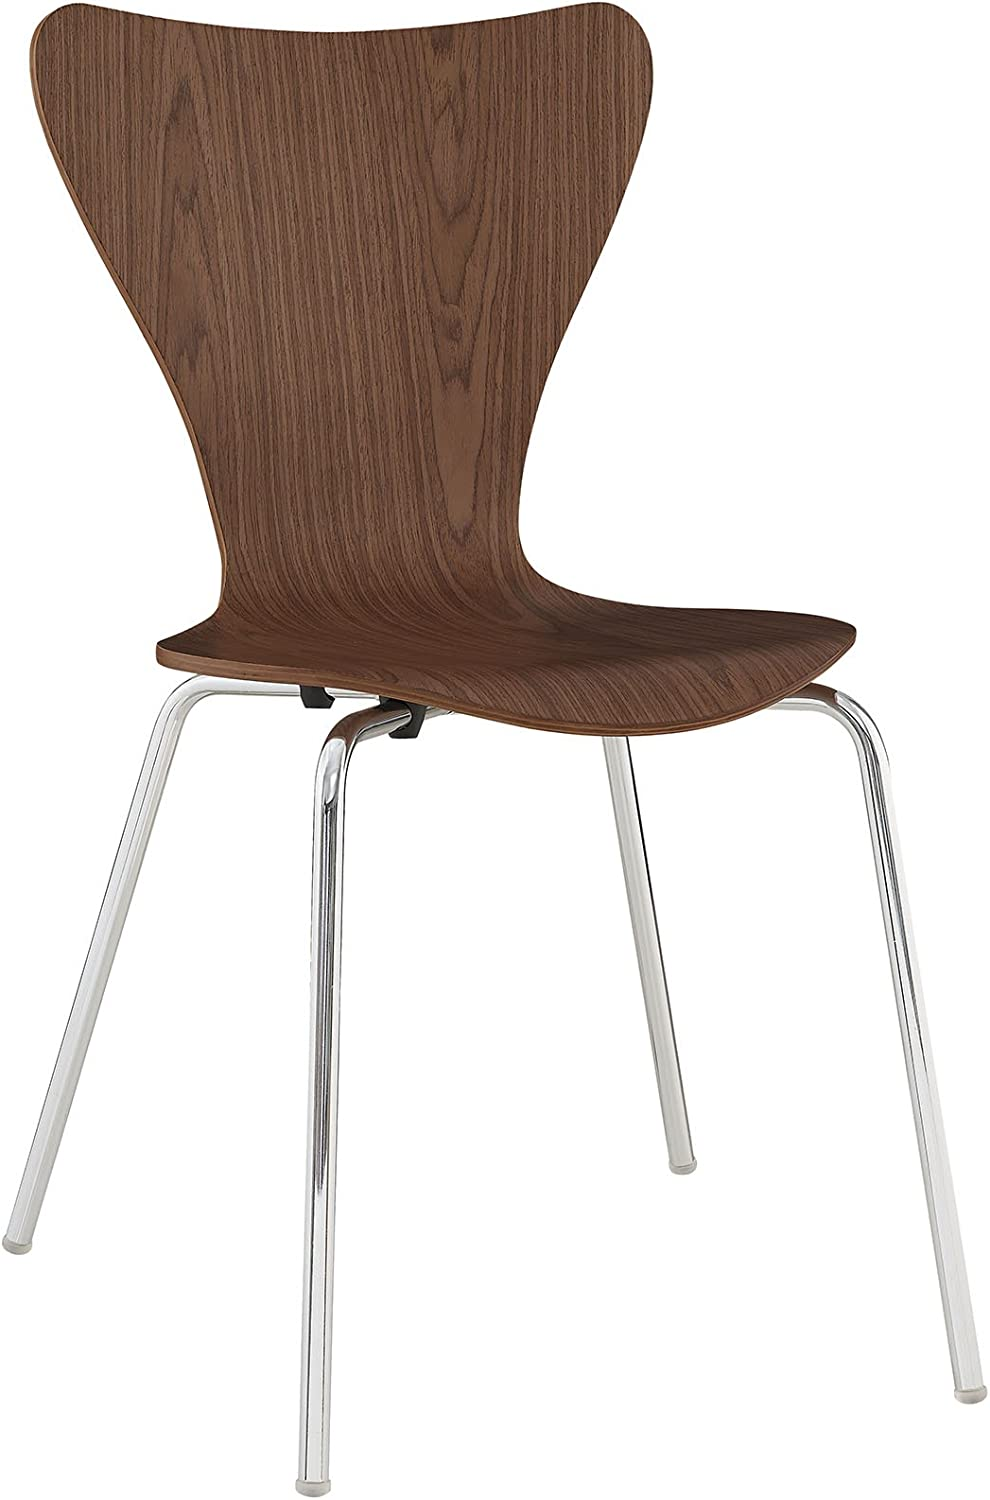 Modway Ernie Mid-Century Modern Wood Stacking Kitchen and Dining Room Chair in Walnut